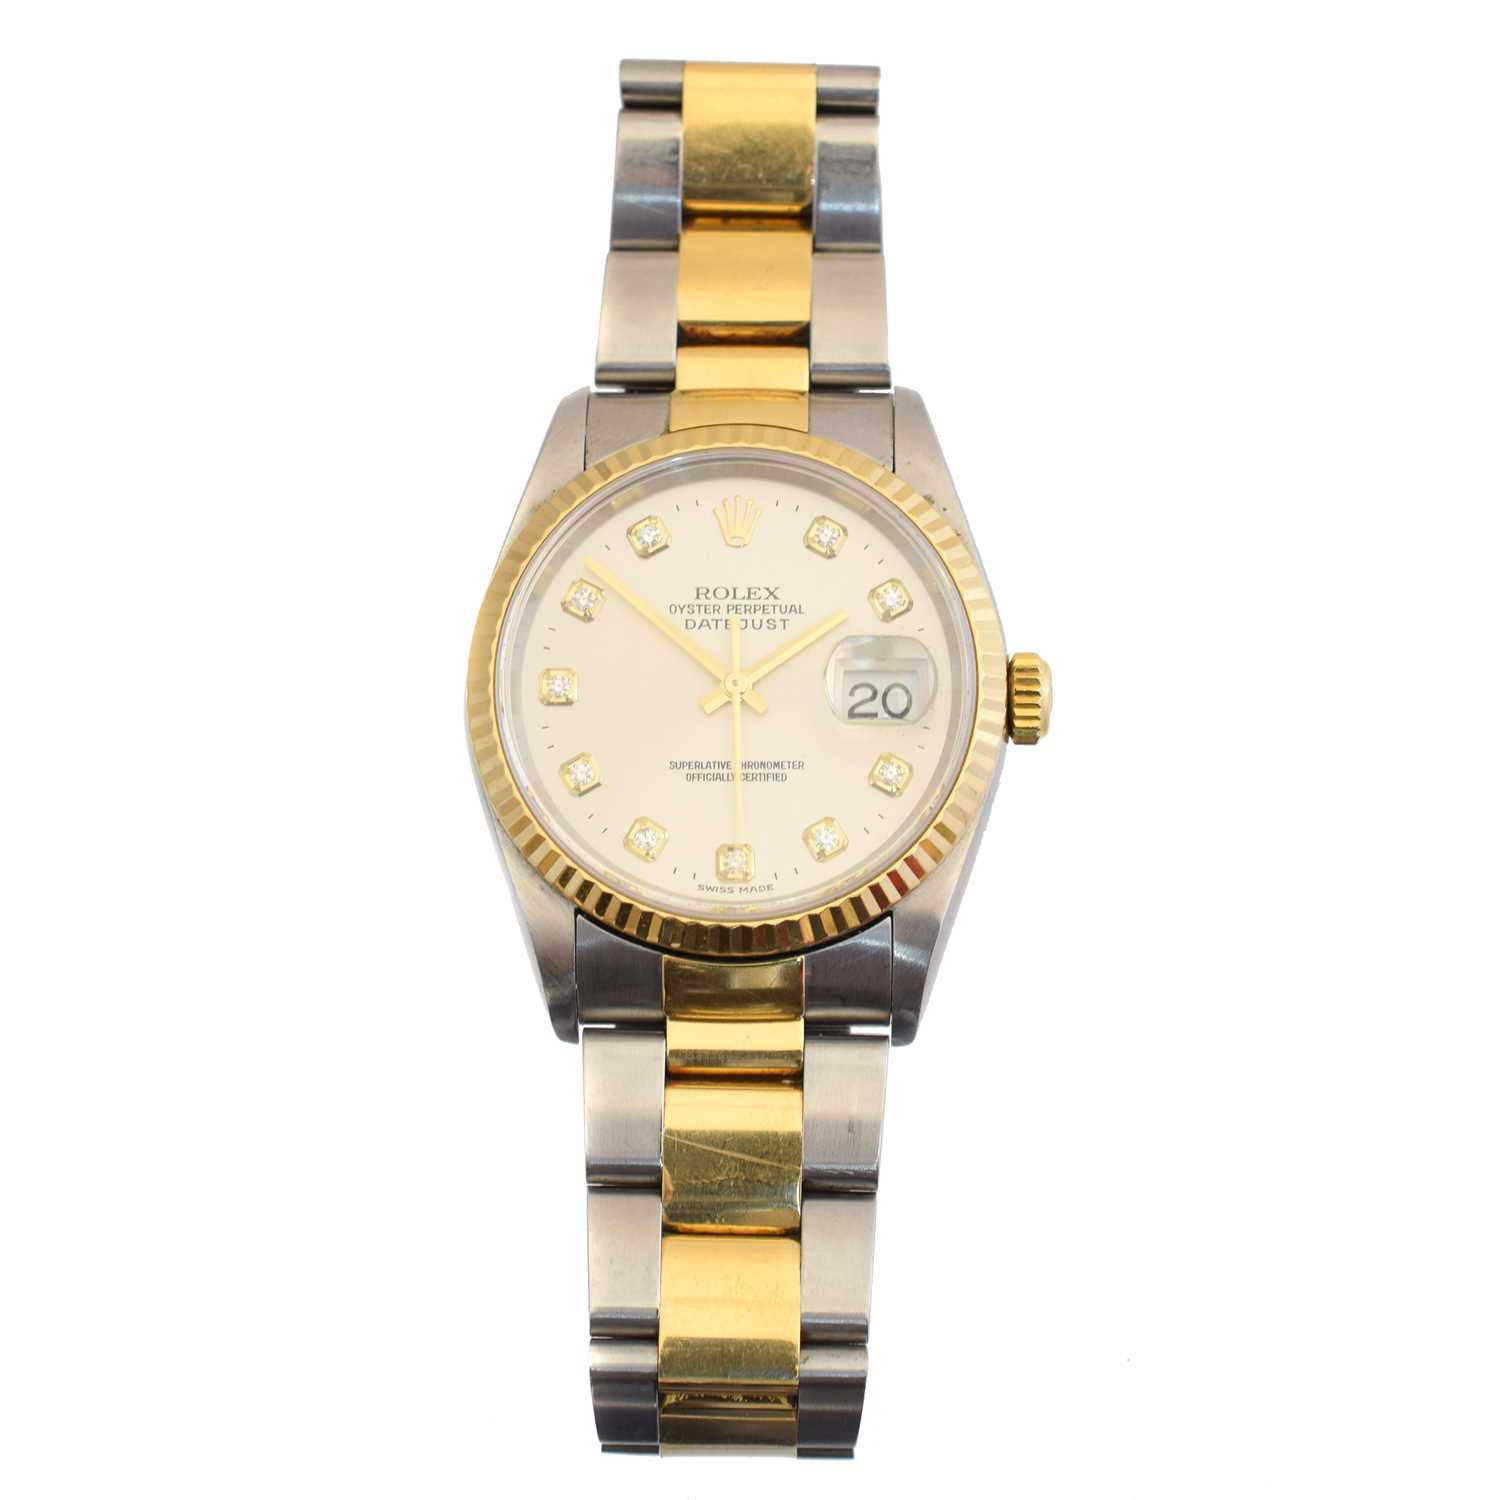 Lot A gents steel and gold Rolex Oyster Perpetual Datejust wristwatch